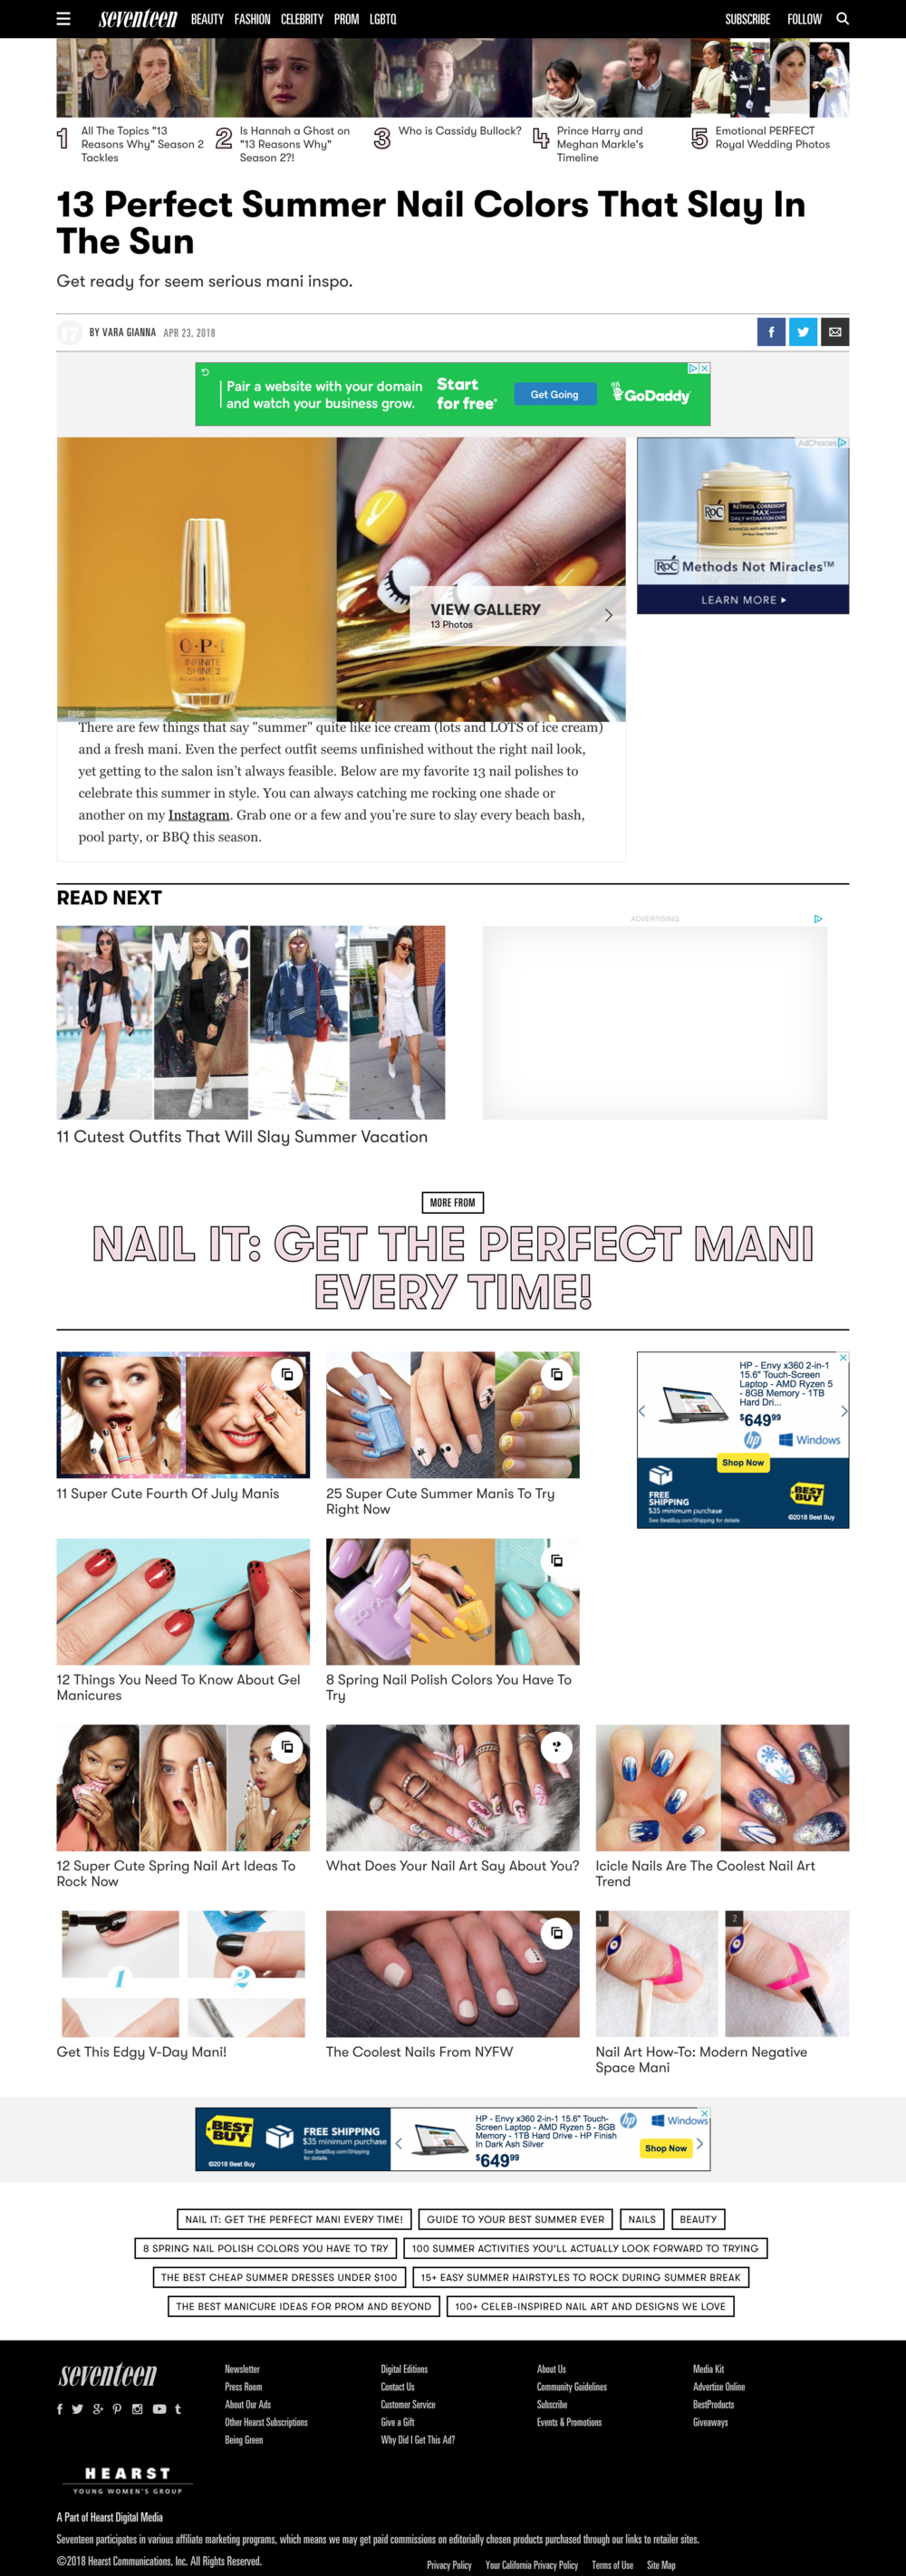 screencapture-seventeen-beauty-nails-g19864863-summer-nail-colors-2018-05-22-07_05_12.png